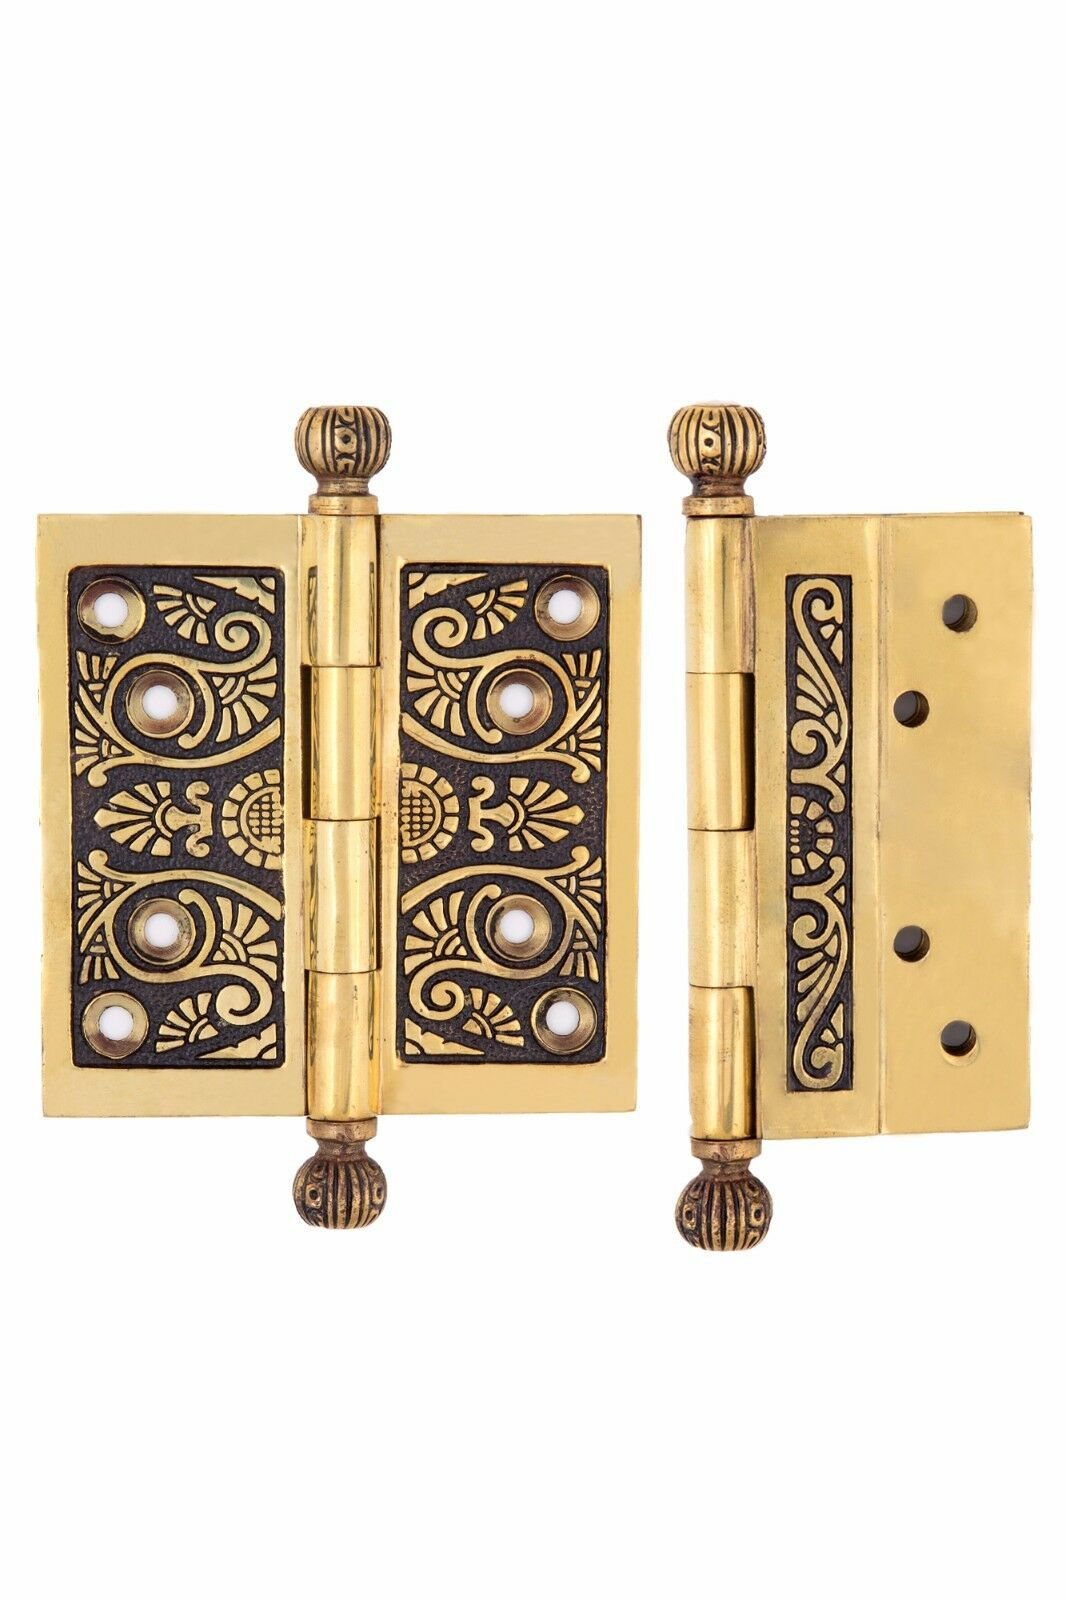 Palmette 4 x 4 decorative Hinges